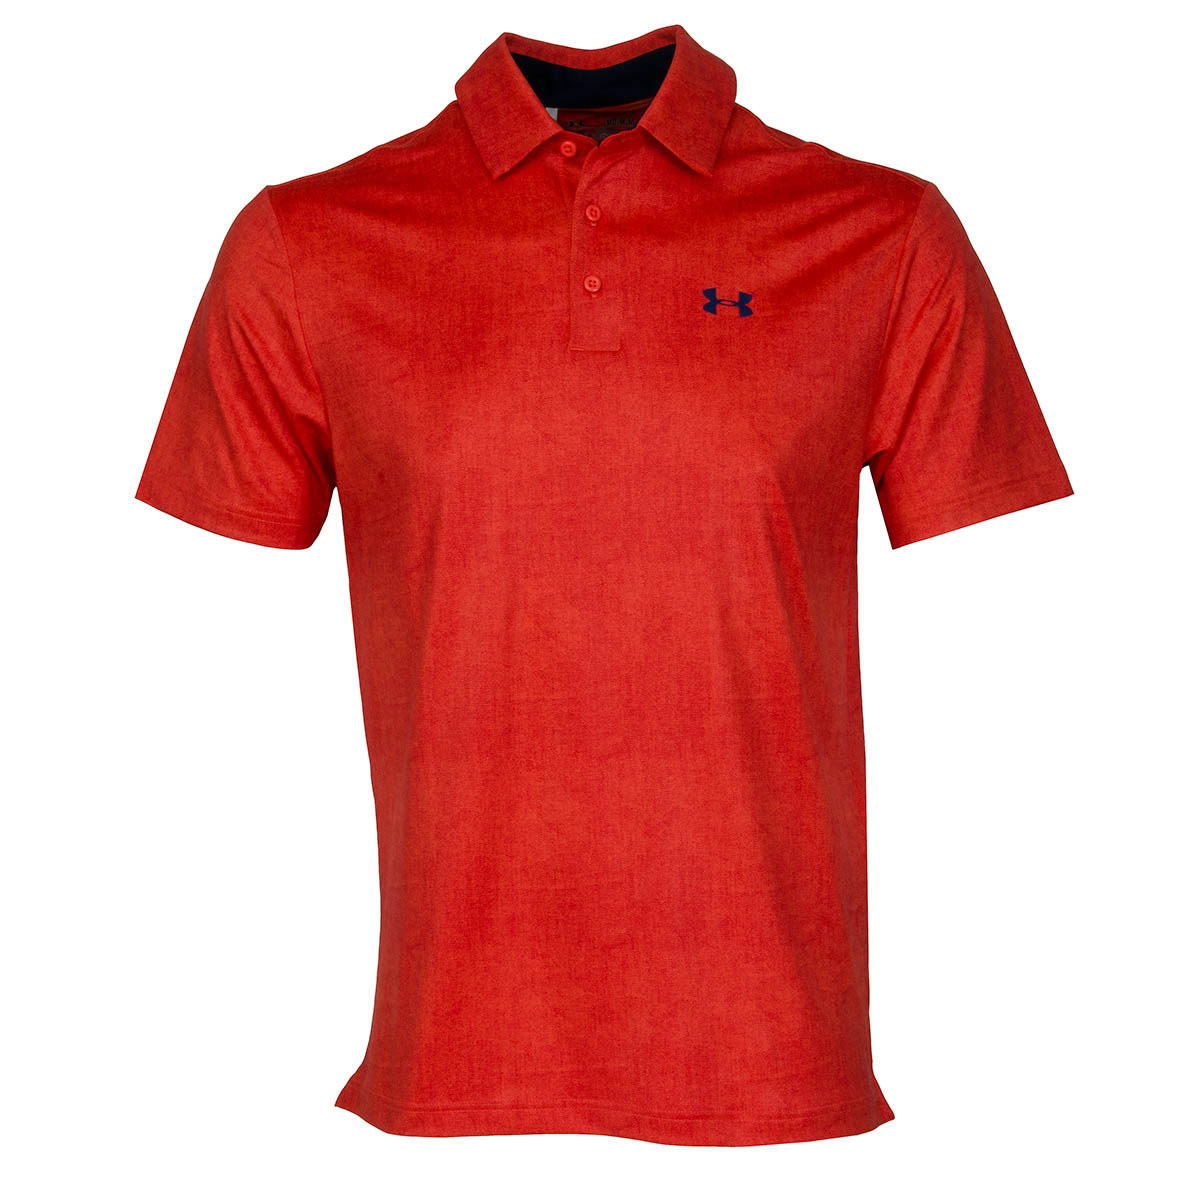 Under armour playoff polo shirt fire academy blackout navy for Academy under armour shirts